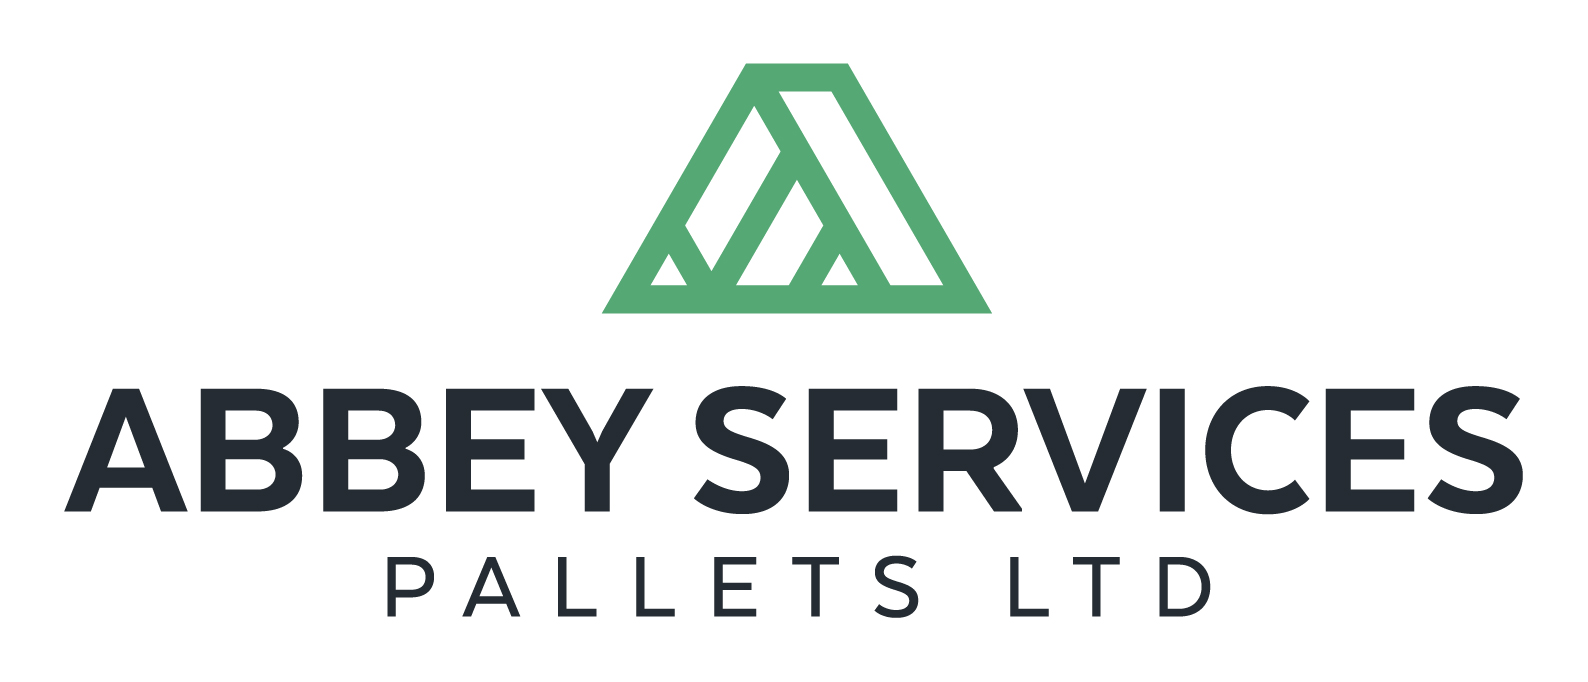 Abbey Services (Pallets) Ltd Logo